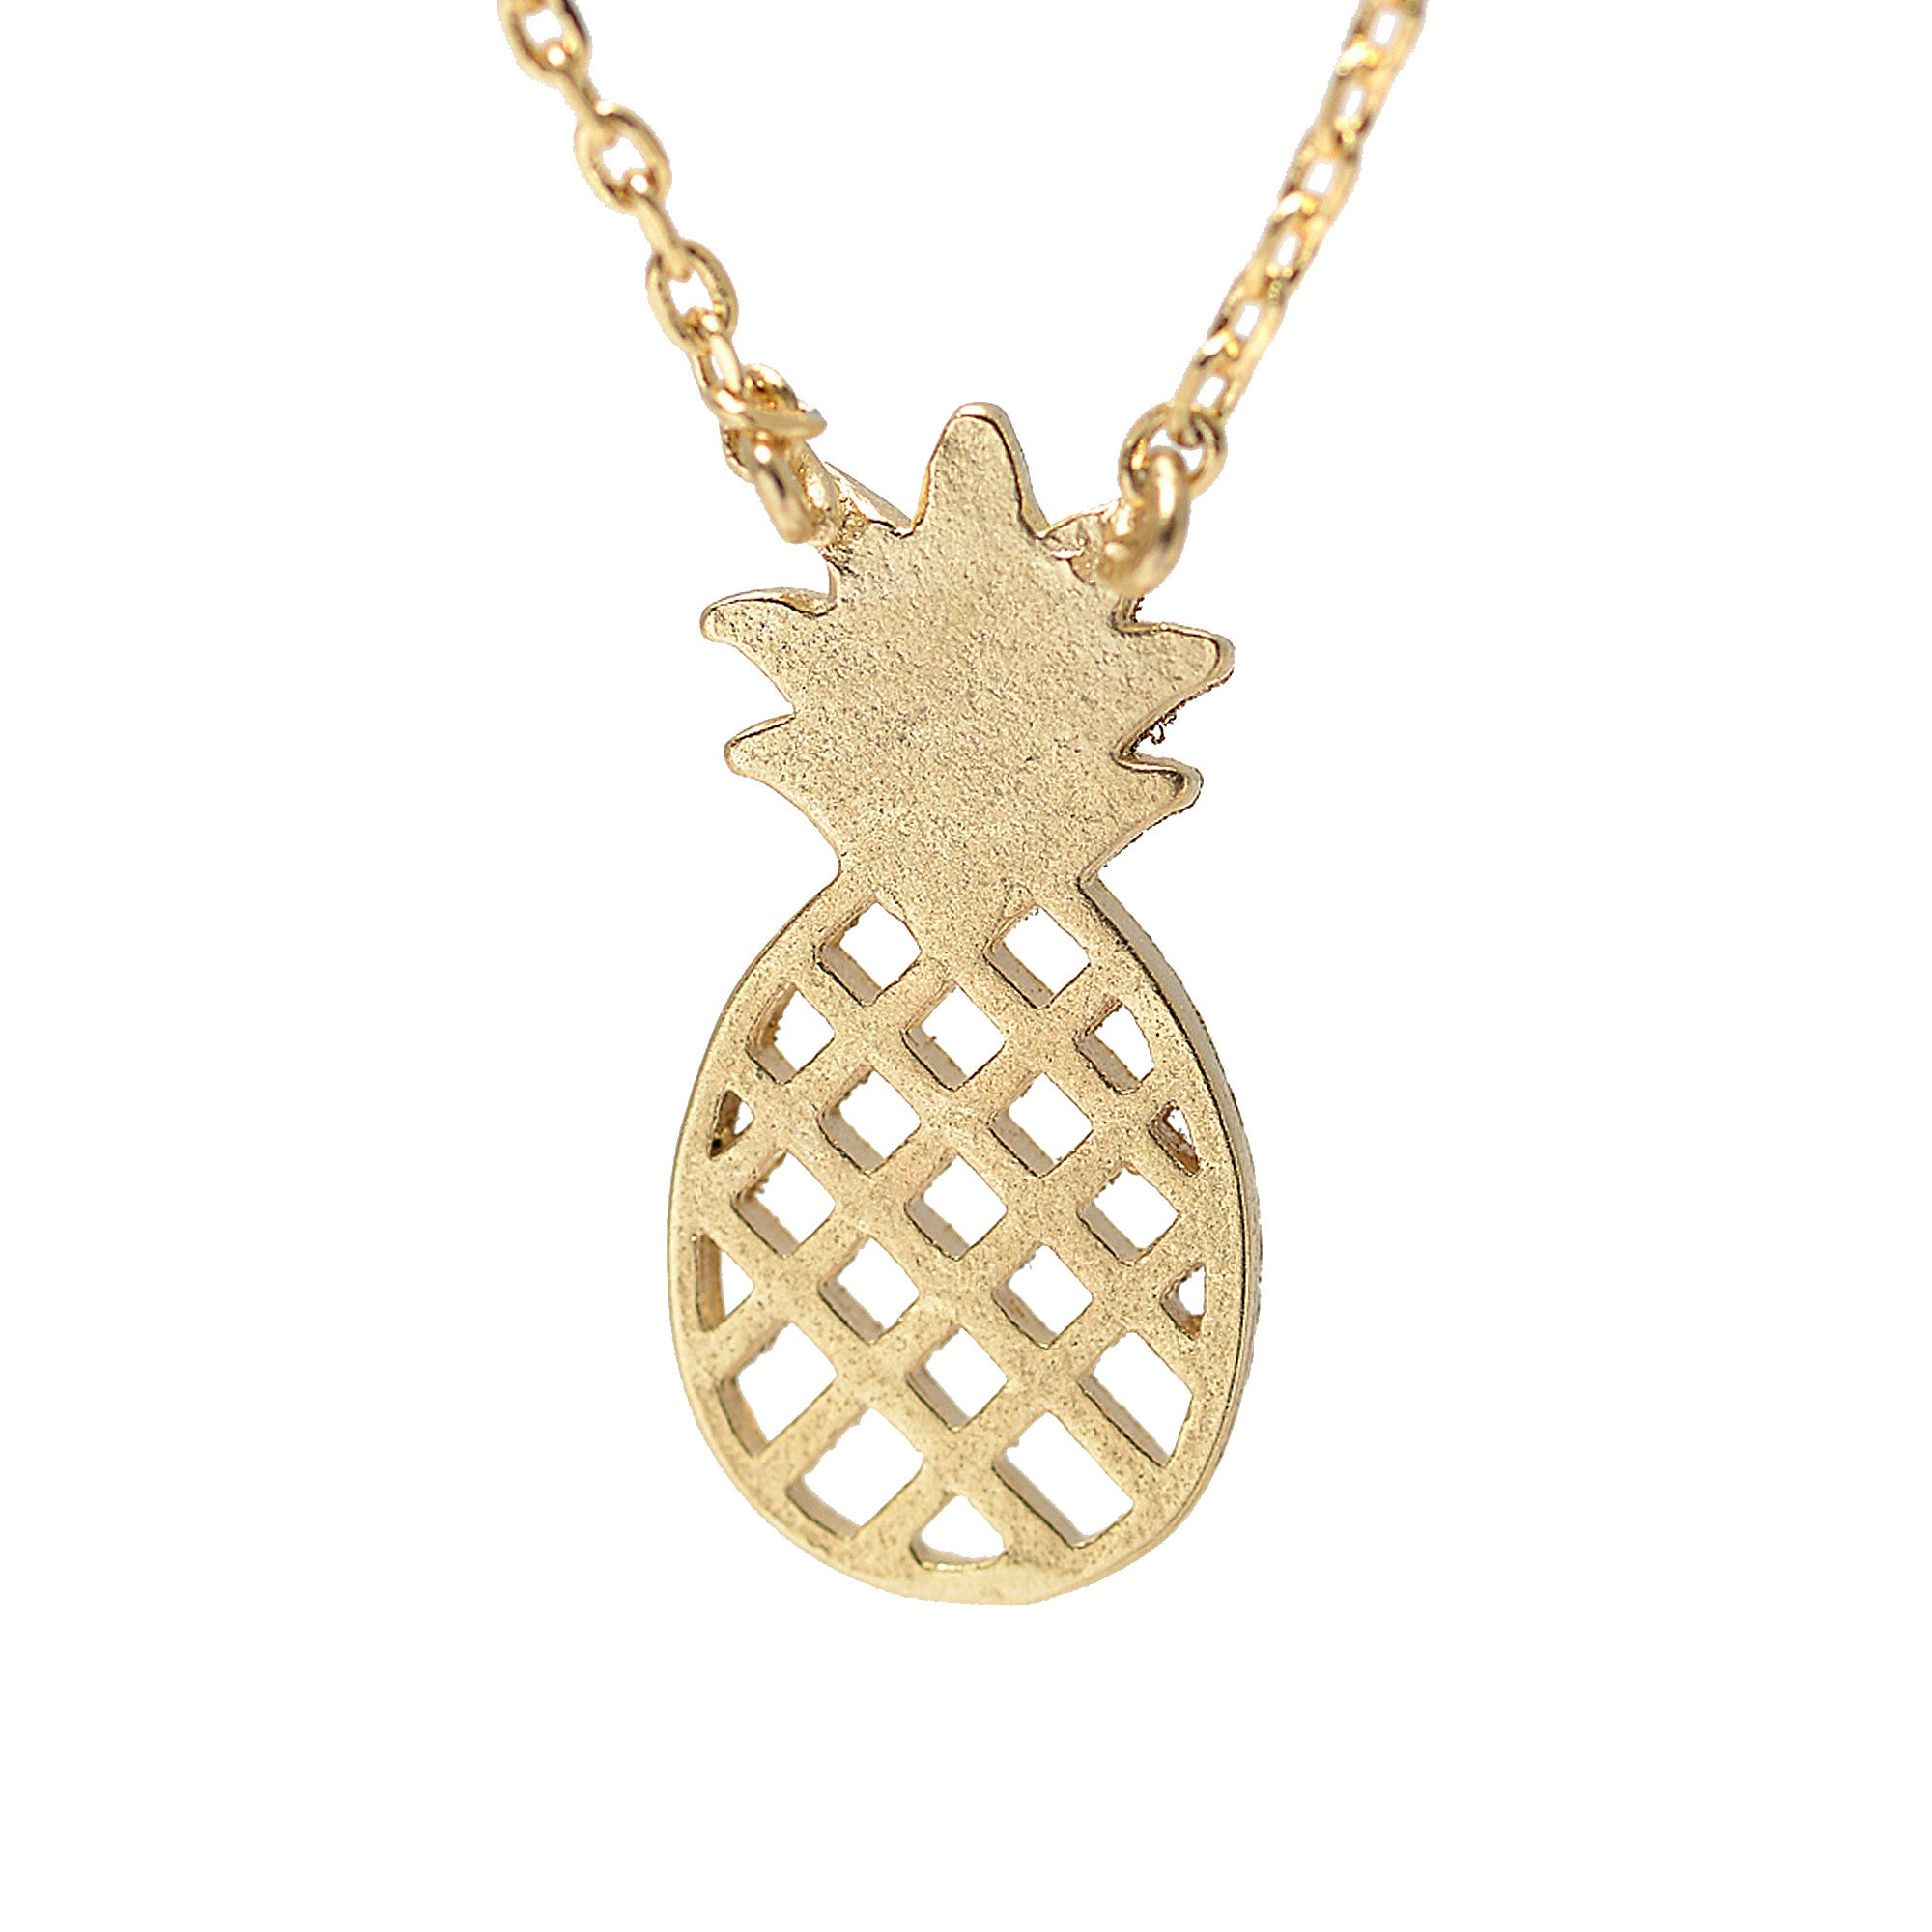 pineapple goldpineapplenecklace and co pearls pineapples product gold necklace